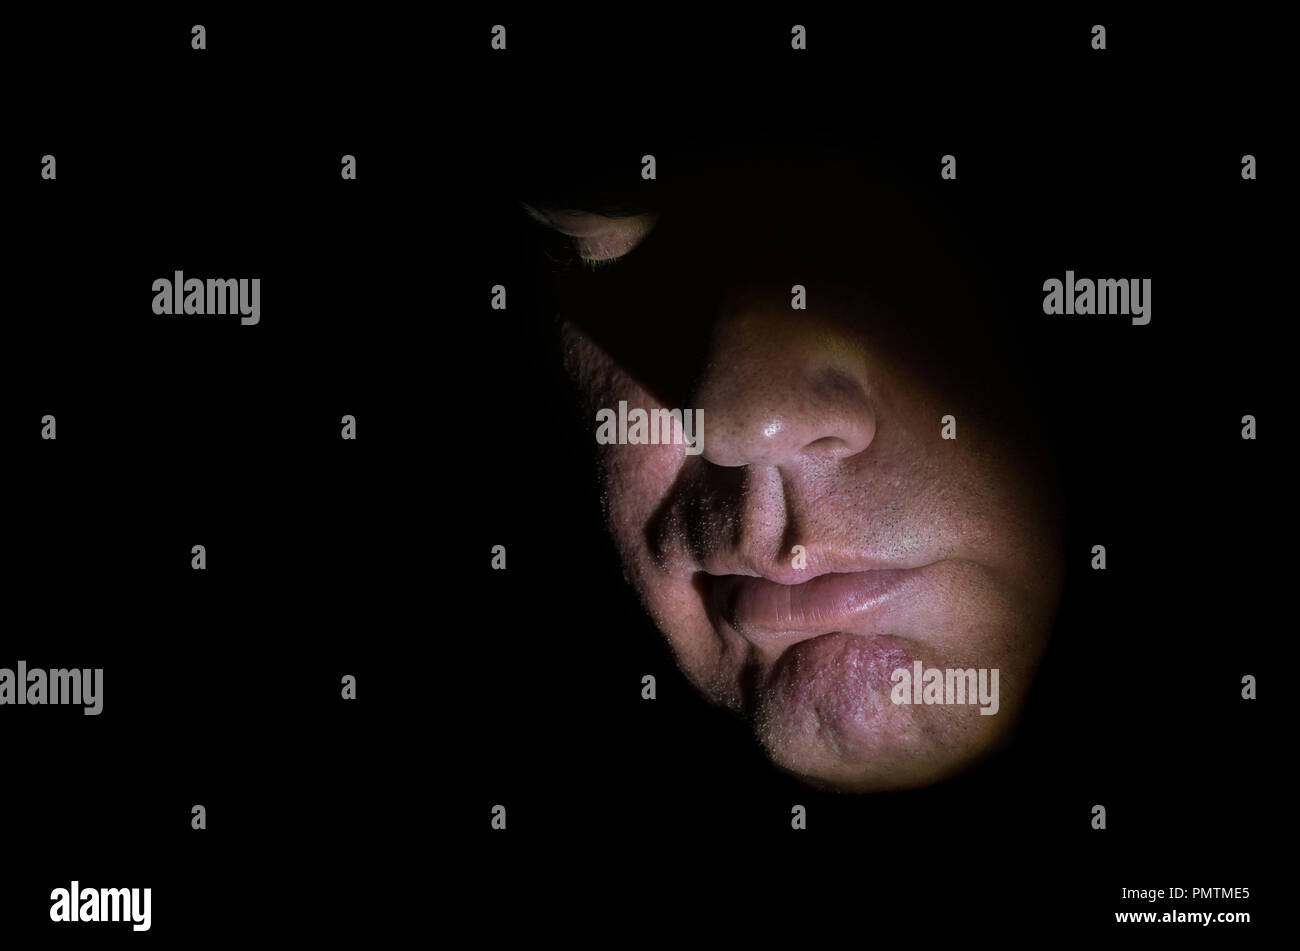 Model released closeup image of middle aged Caucasian man's face, partially lit with moody lighting & eyes closed, showing nose & mouth, looking down. - Stock Image